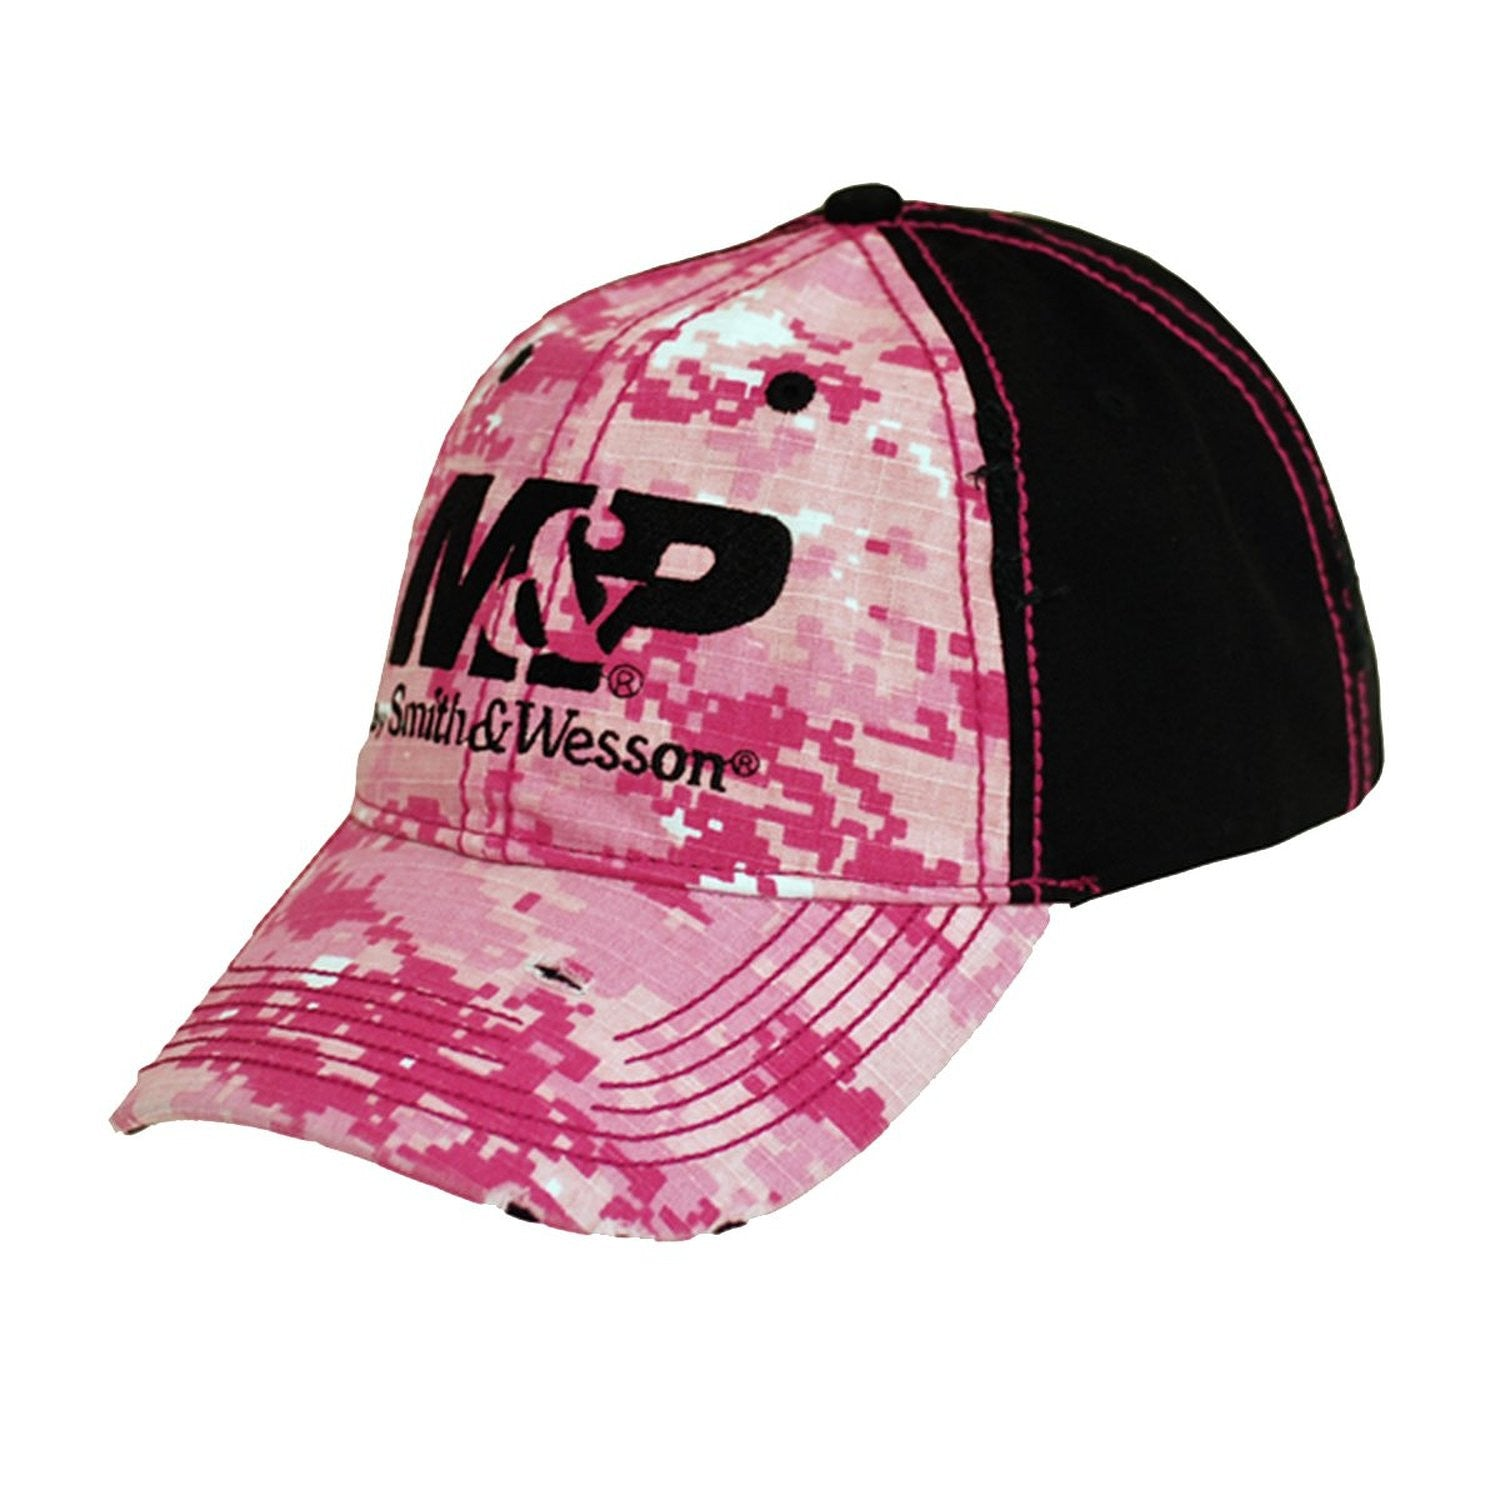 M&P by Smith & Wesson Ladies Pink Digital Camo Logo Cap Hat - Back40Trading2